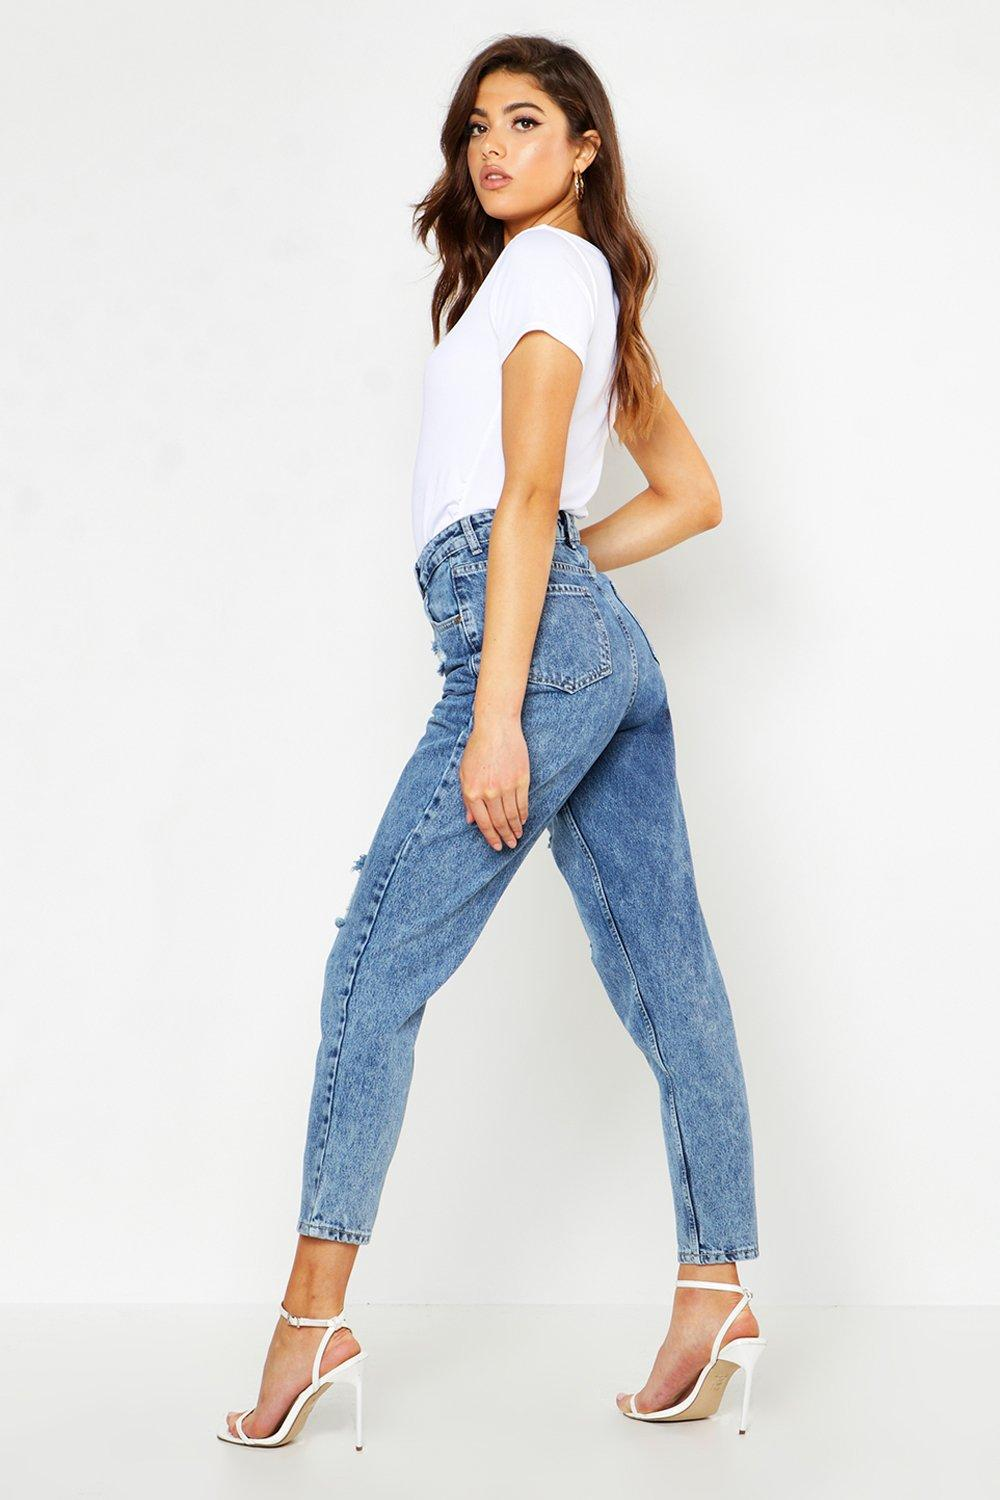 Tasha Acid Wash Effect High Waist Distressed Mom Jeans - woven-trends